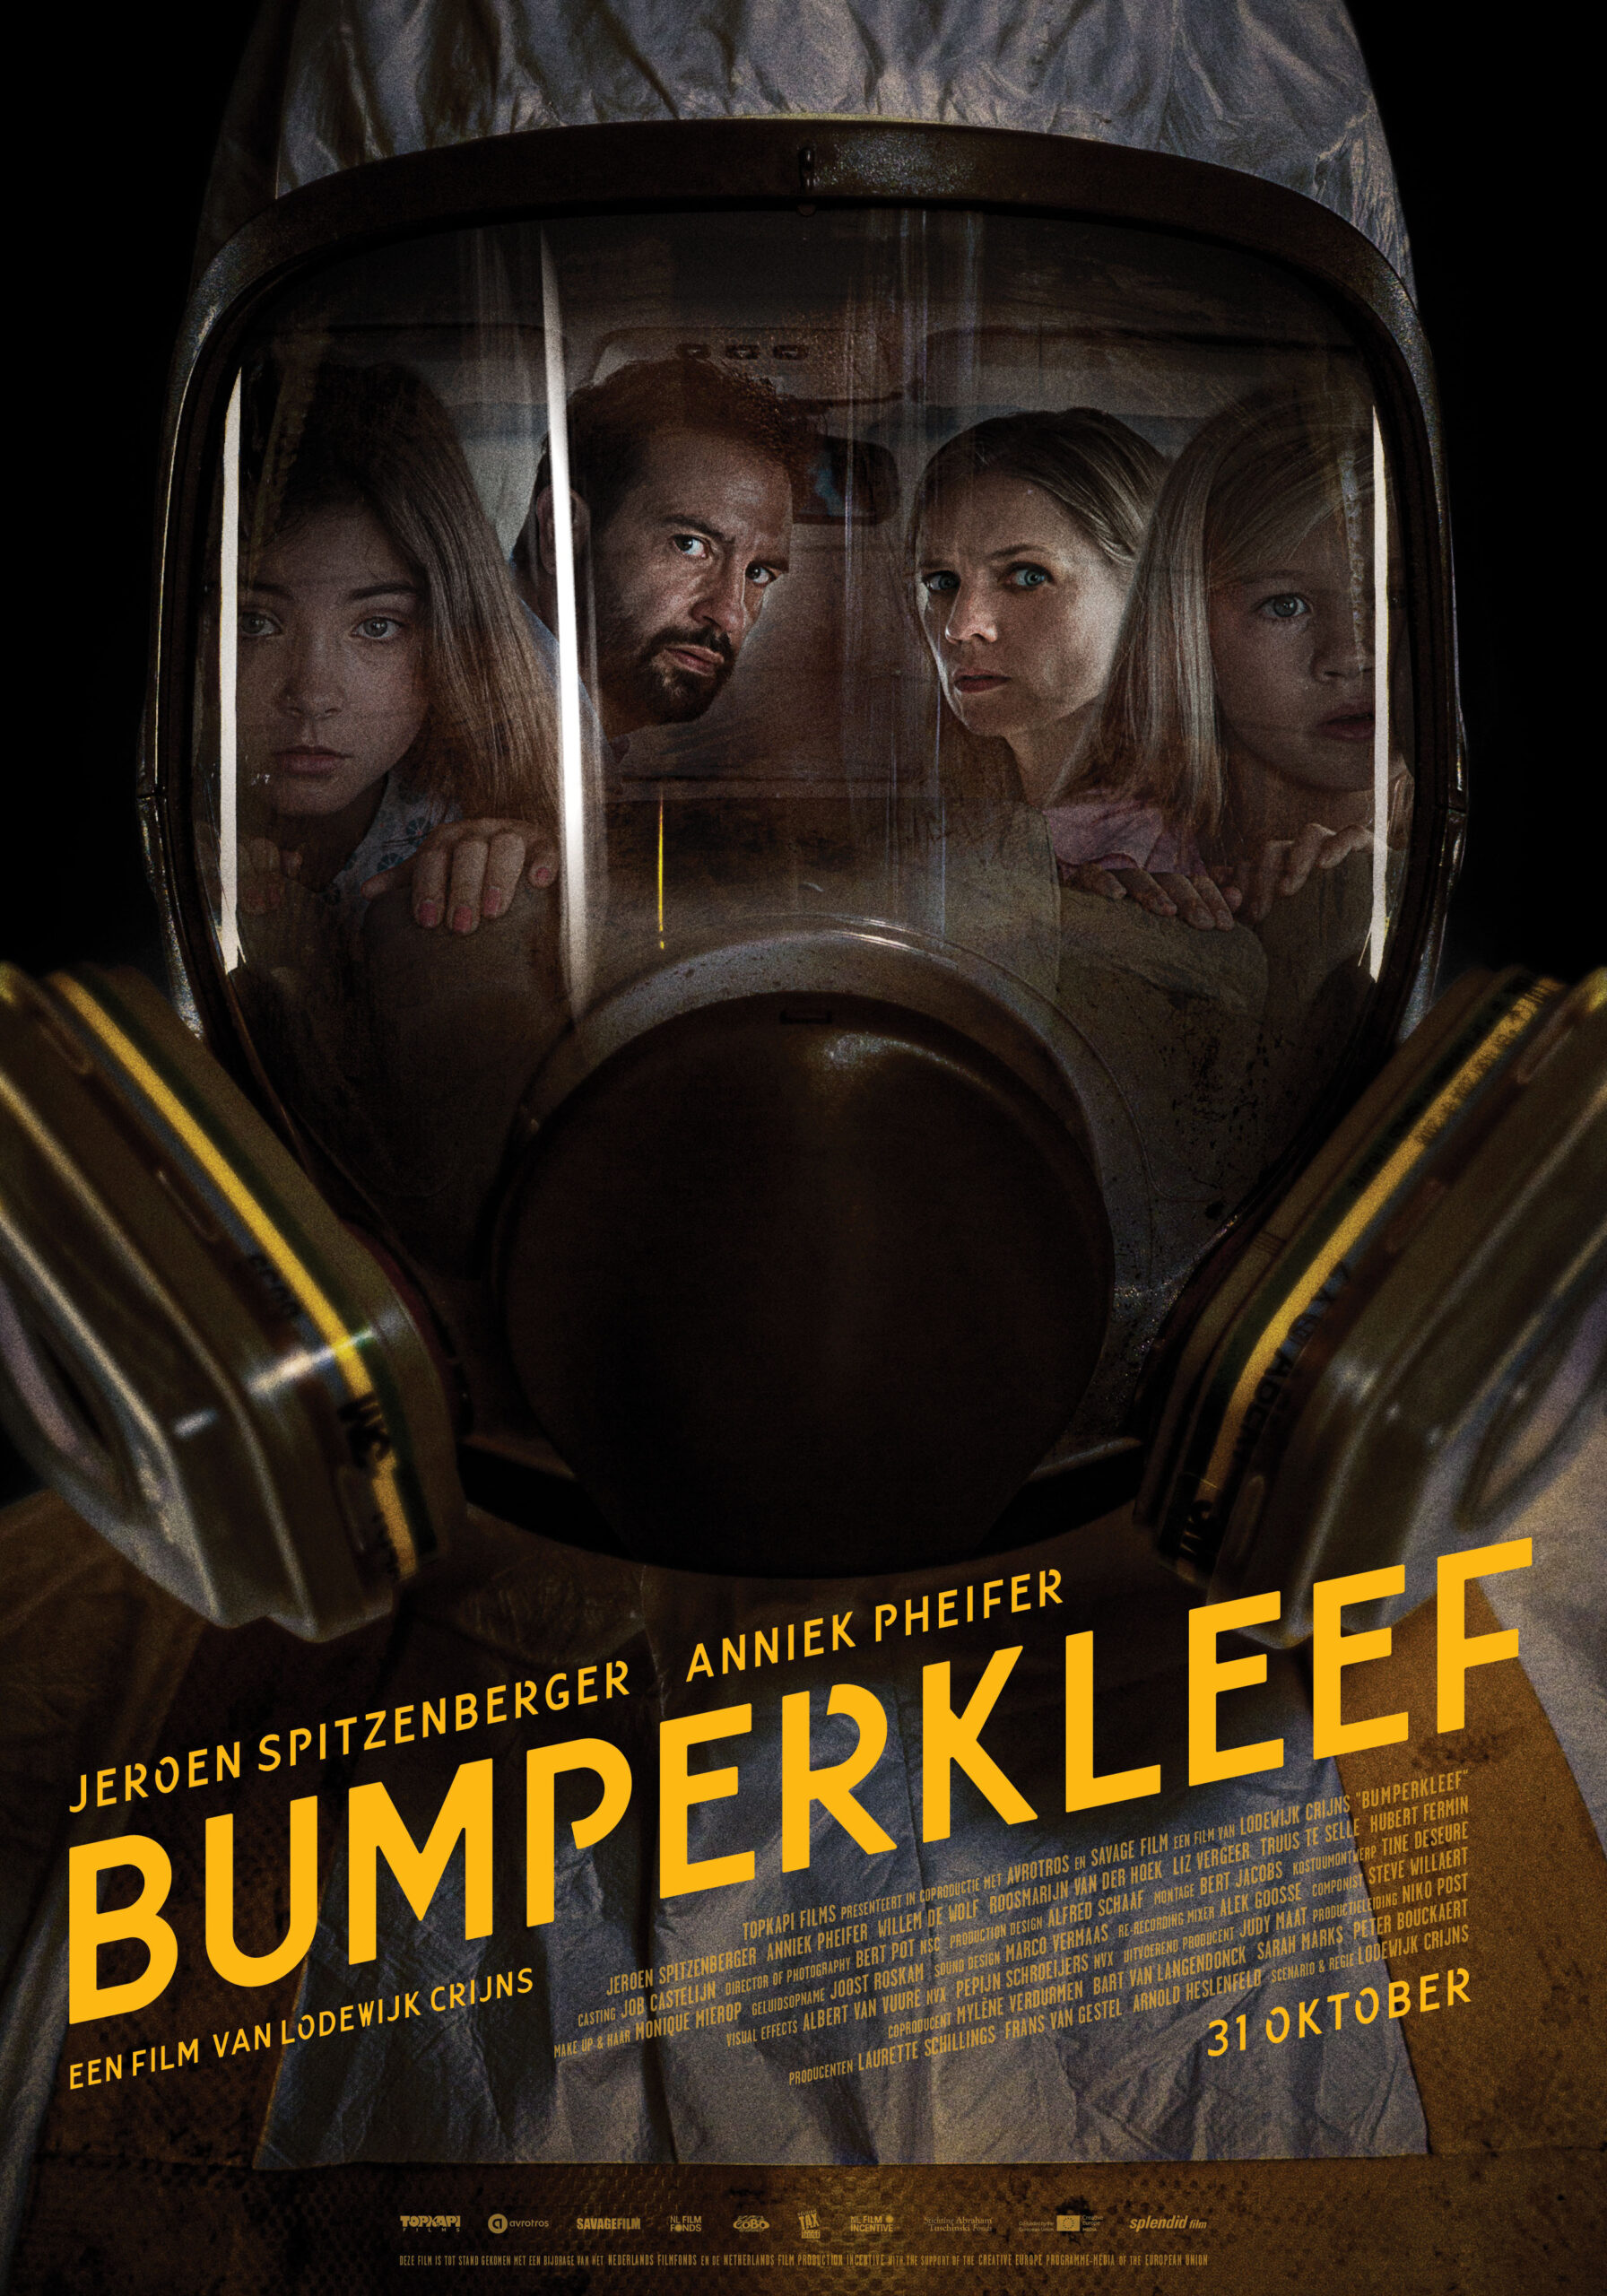 Film Review: TAILGATE (a.k.a. Bumperkleef) (2019)